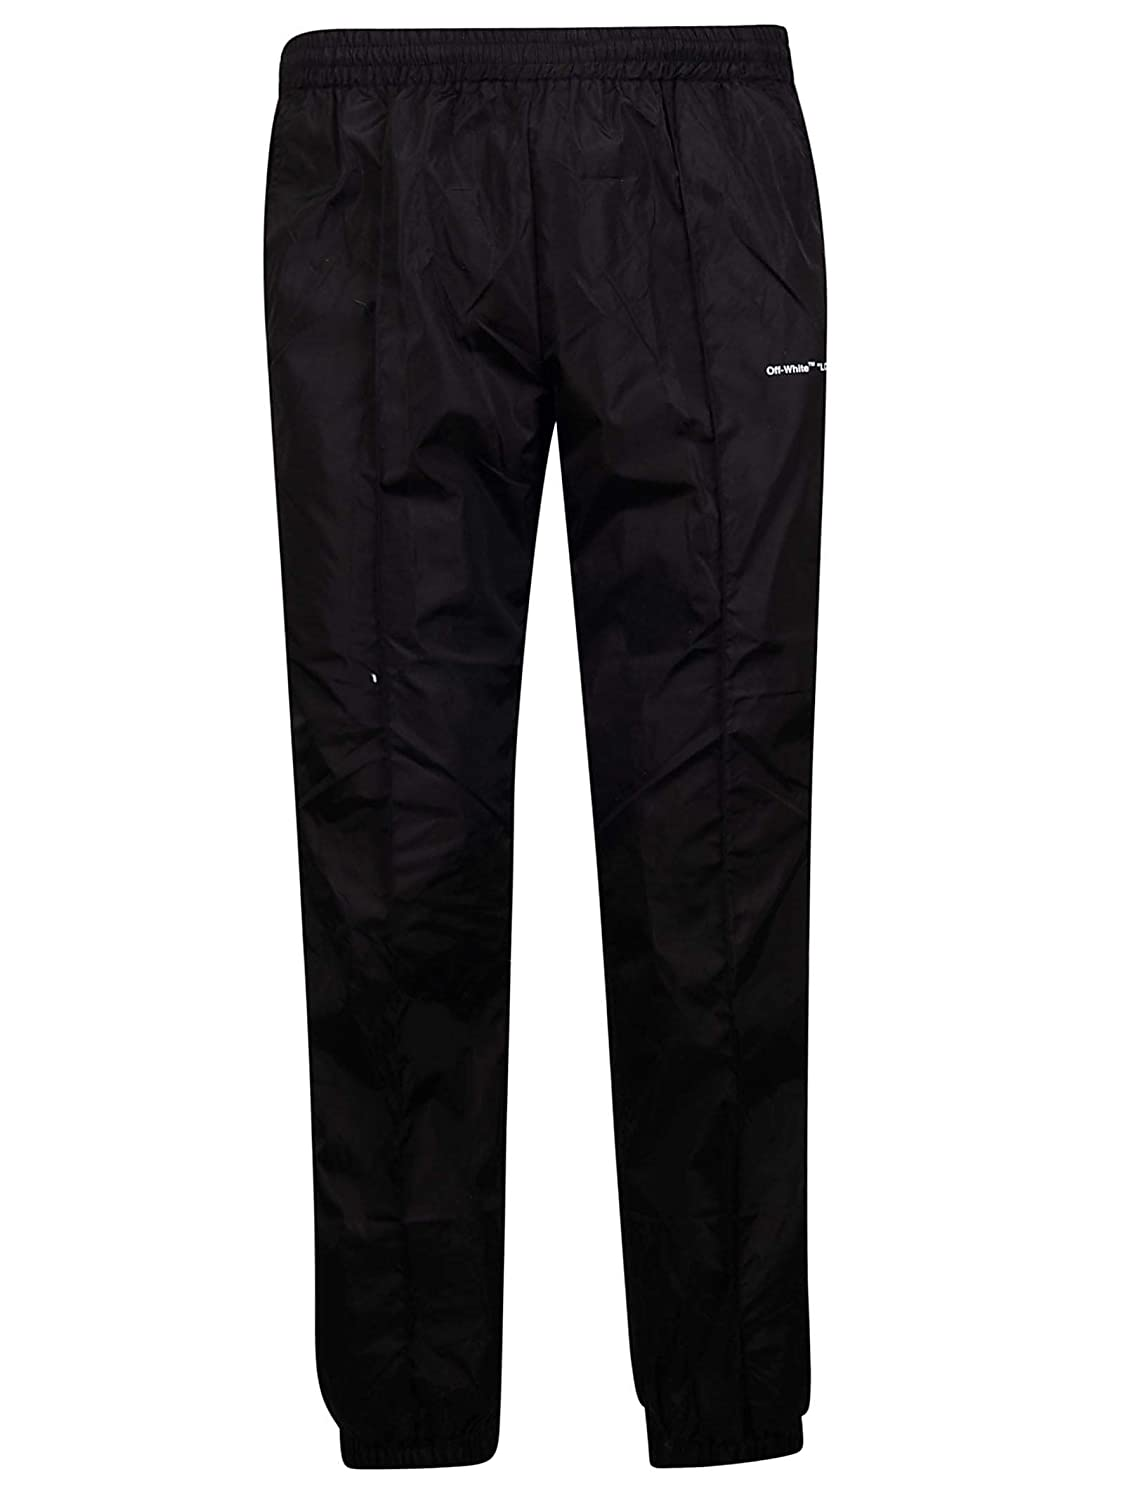 Brand Size L OFFWHITE Men's OMCA090S19A230011000 Black Polyester Joggers